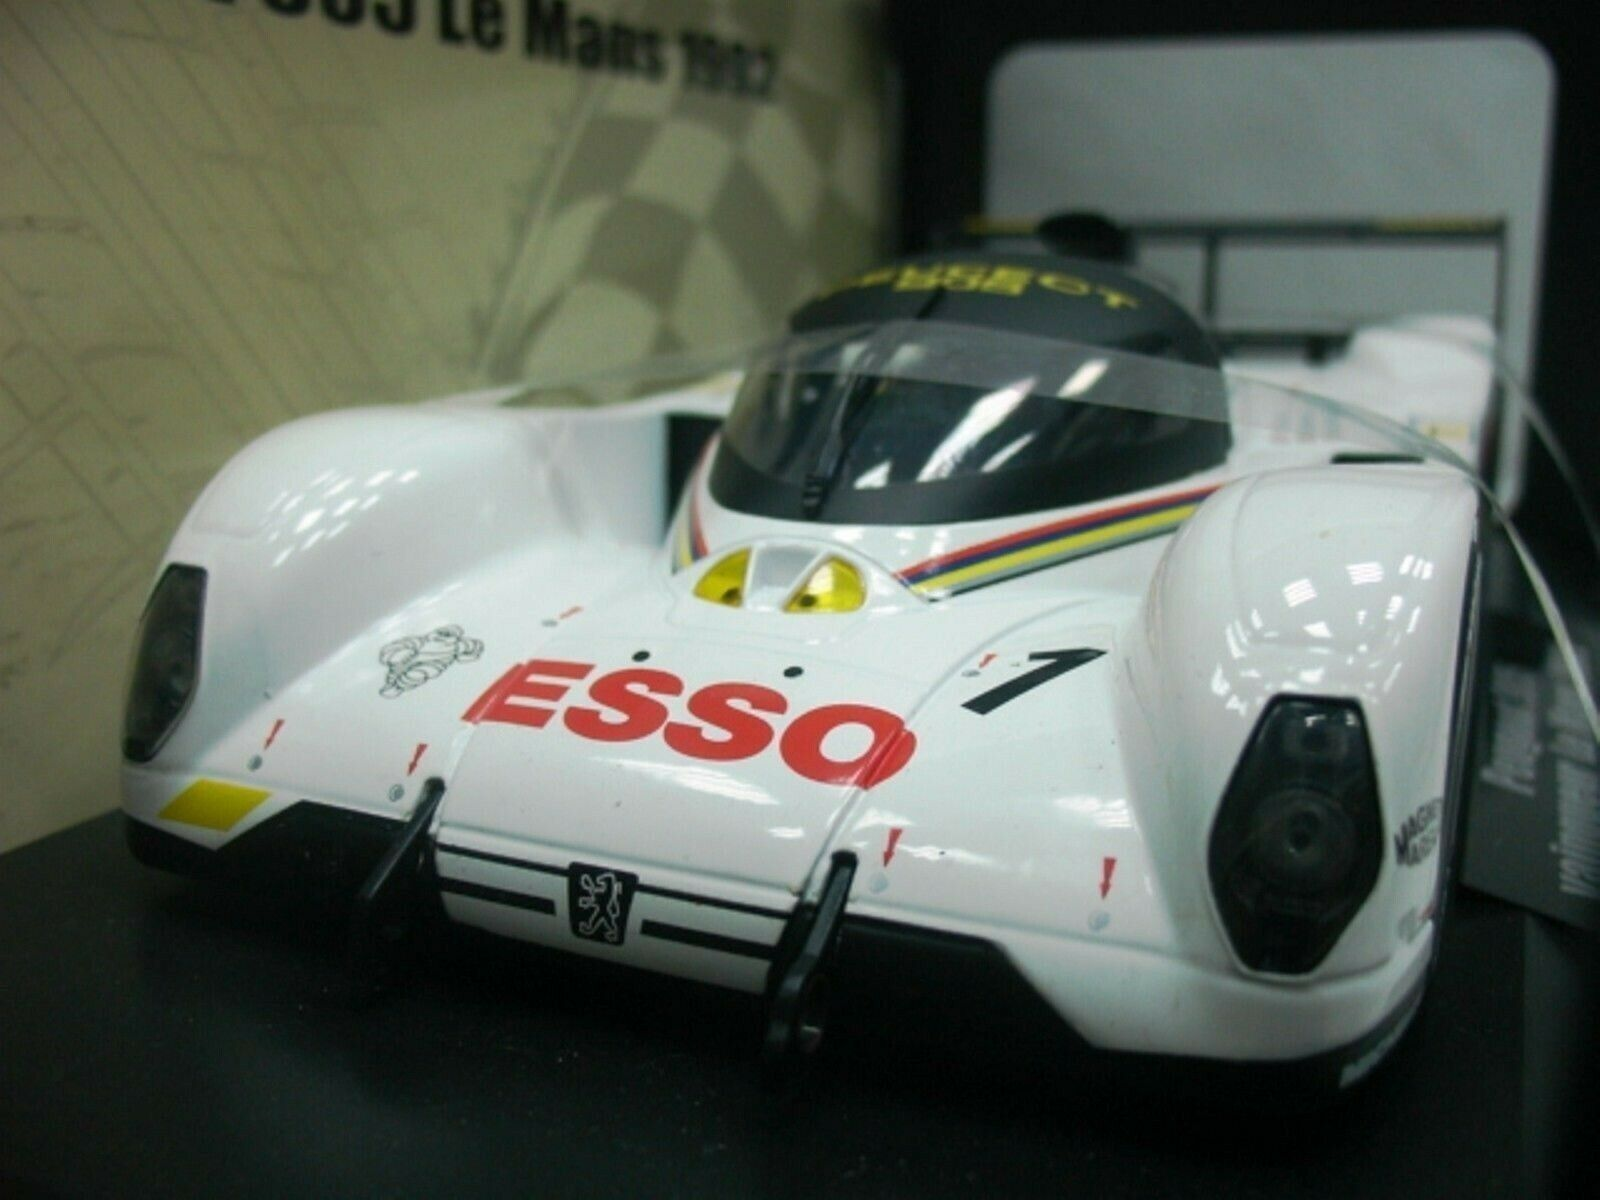 WOW EXTREMELY RARE Peugeot 905 Evo LM Winner Le Mans 1992 1 18 Norev-Spark GT